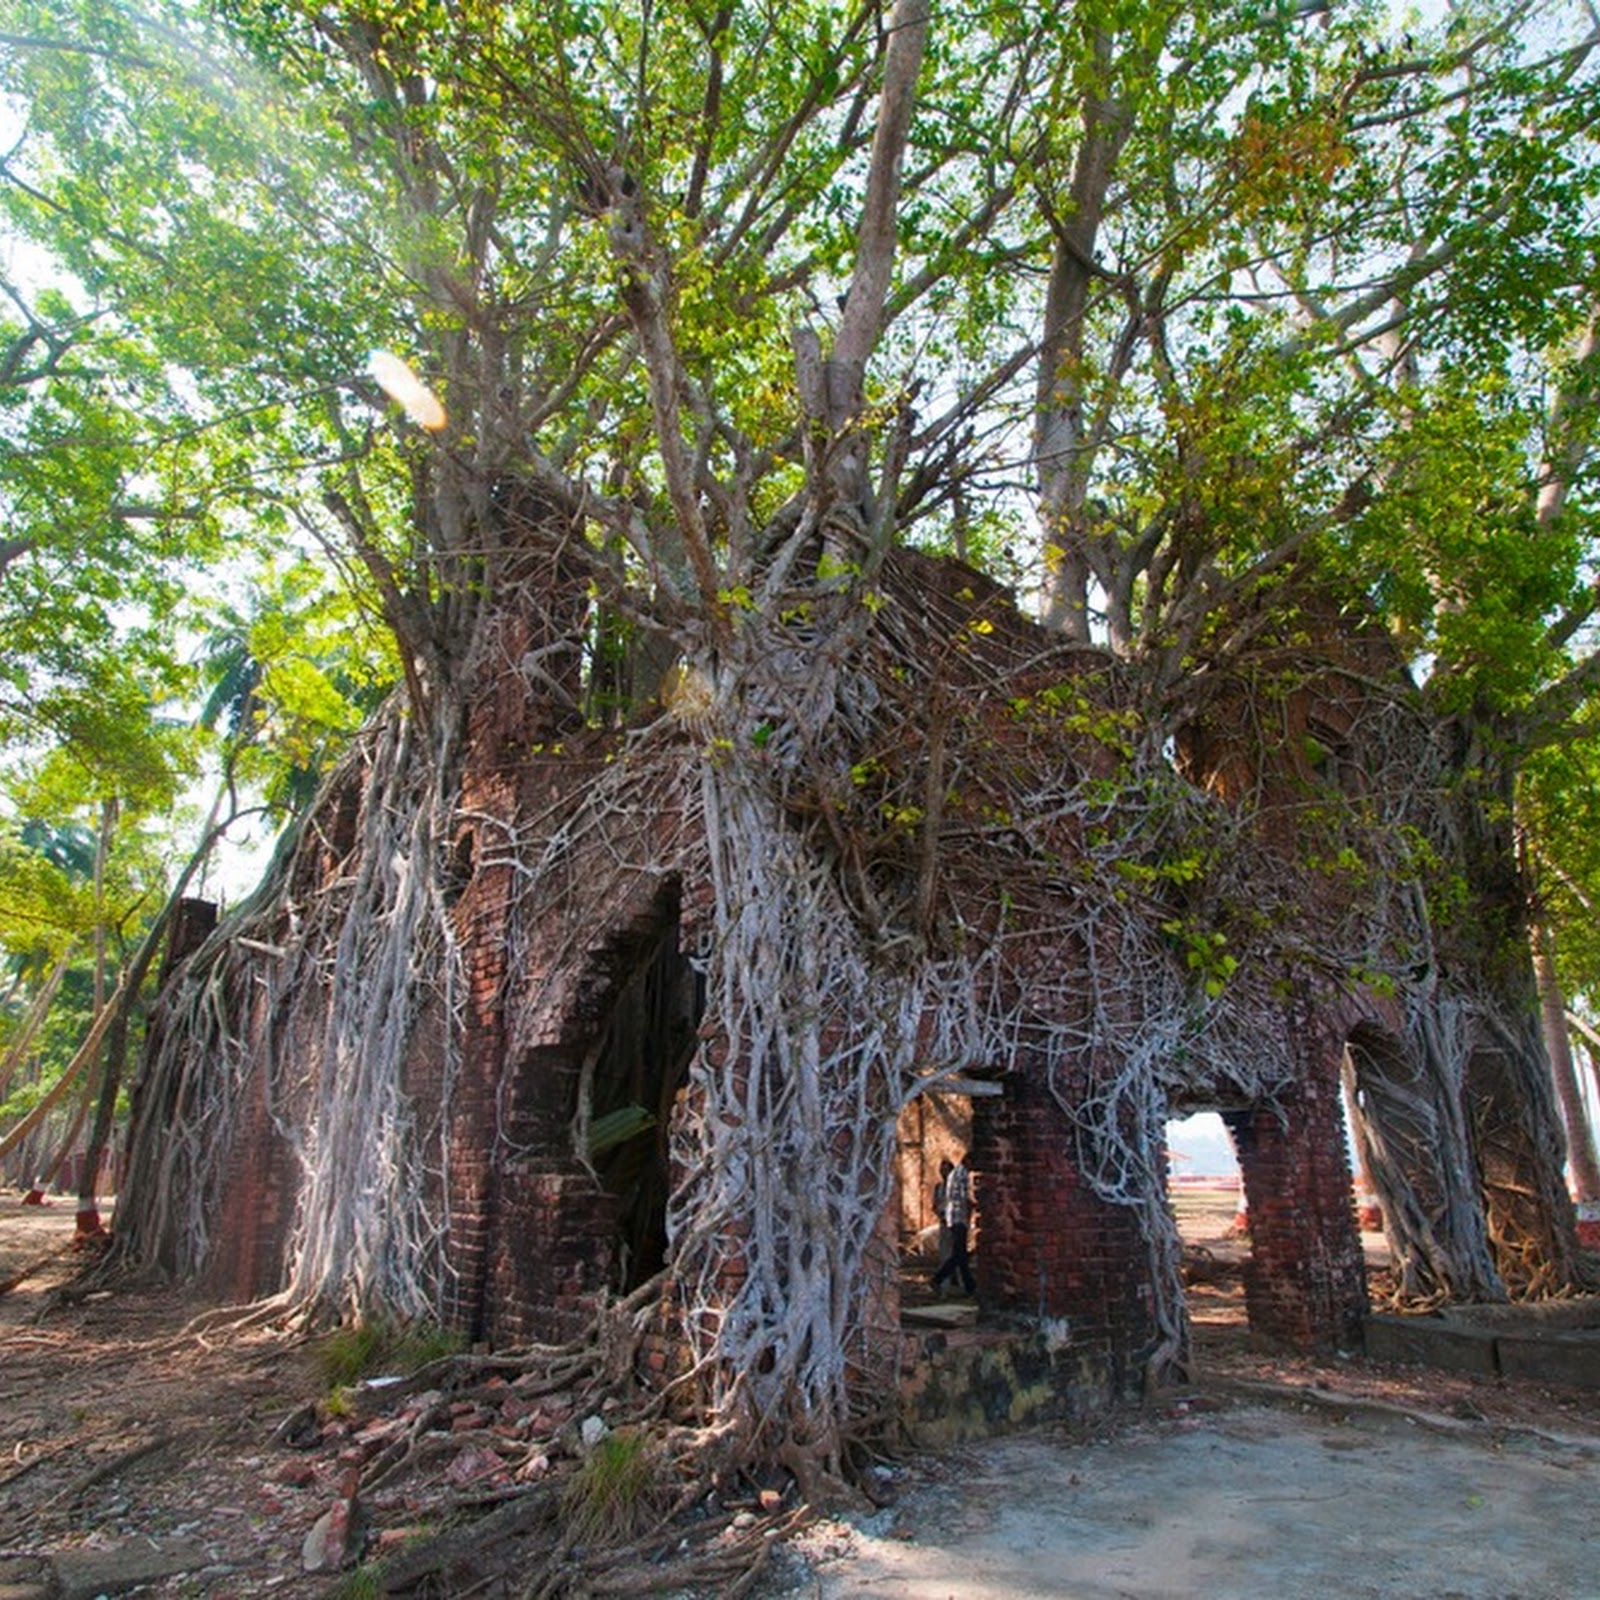 Ross Island: The Ghostly Ruins of a Former Penal Colony